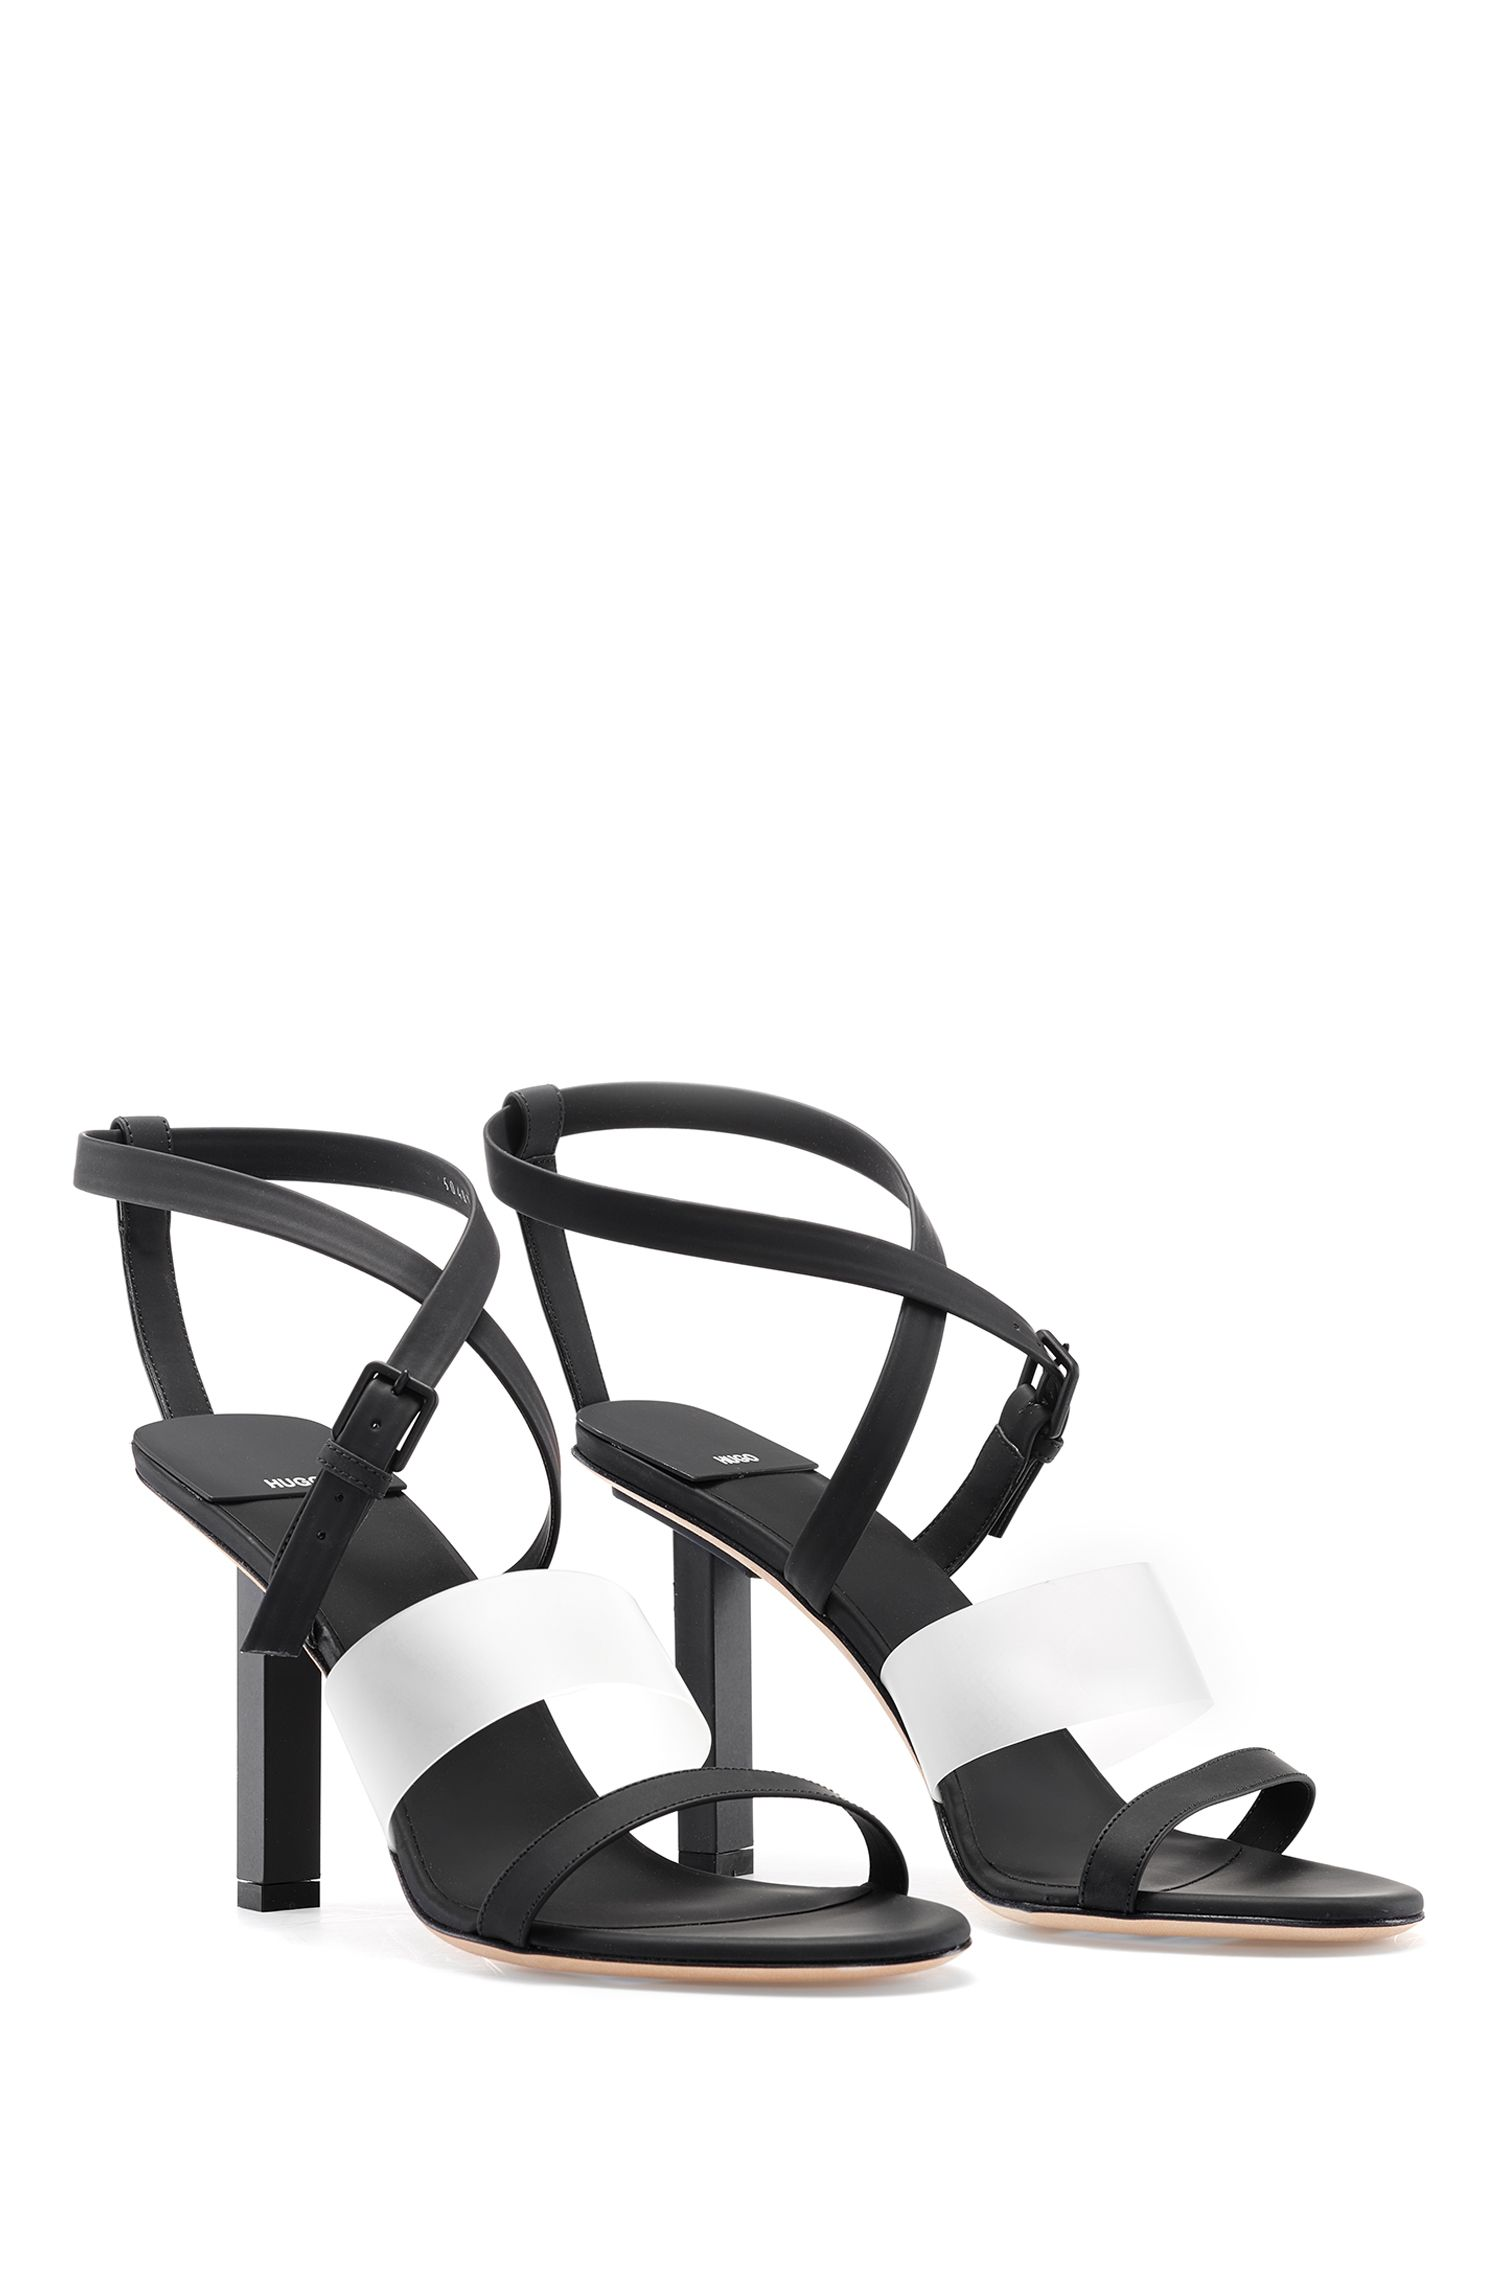 Italian-made strappy sandals with squared heel and logo, Black